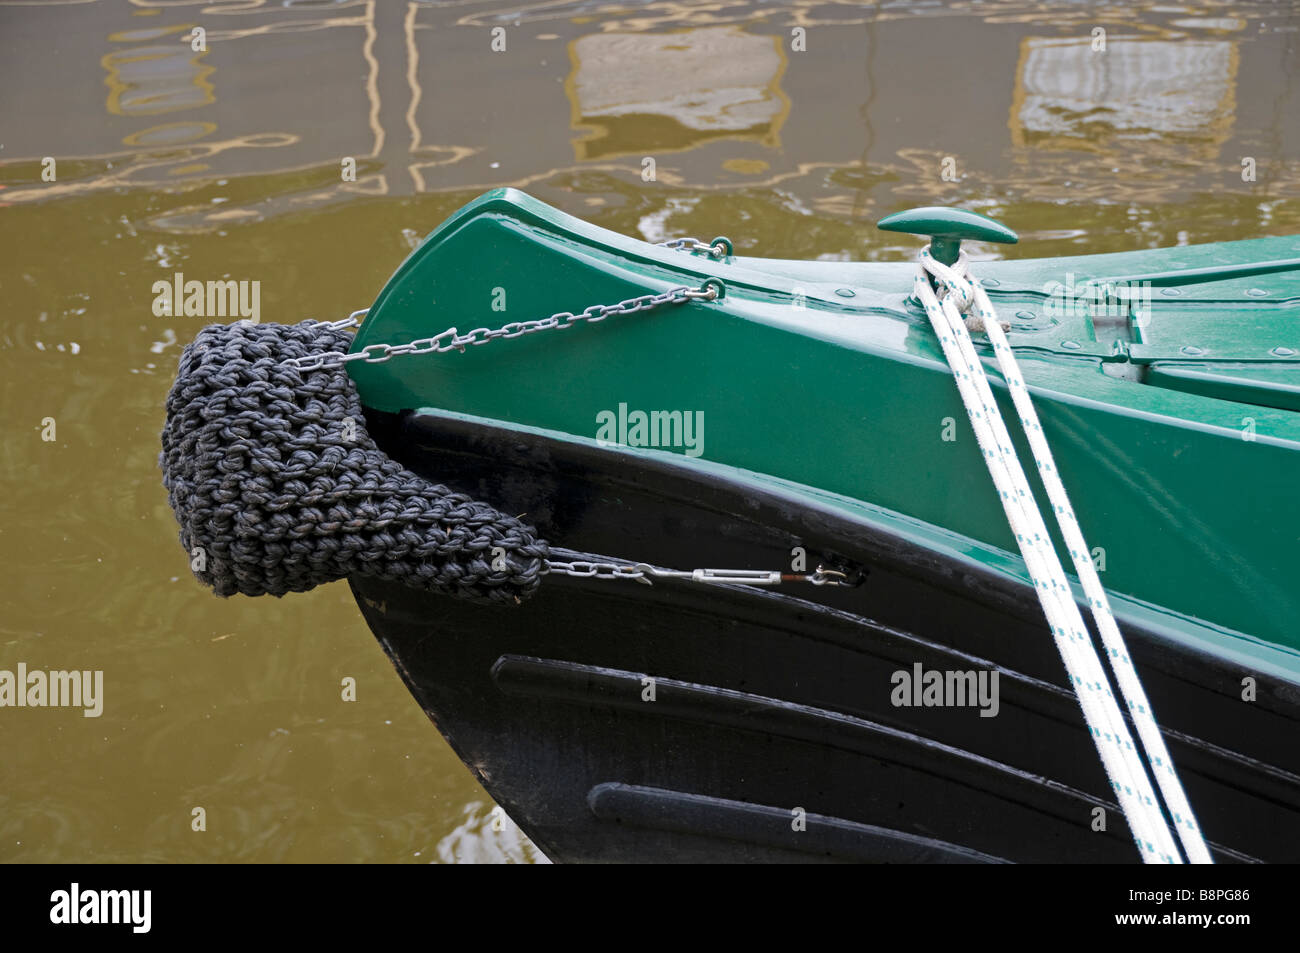 The bow of a longboat secured to side of canal with line - Stock Image